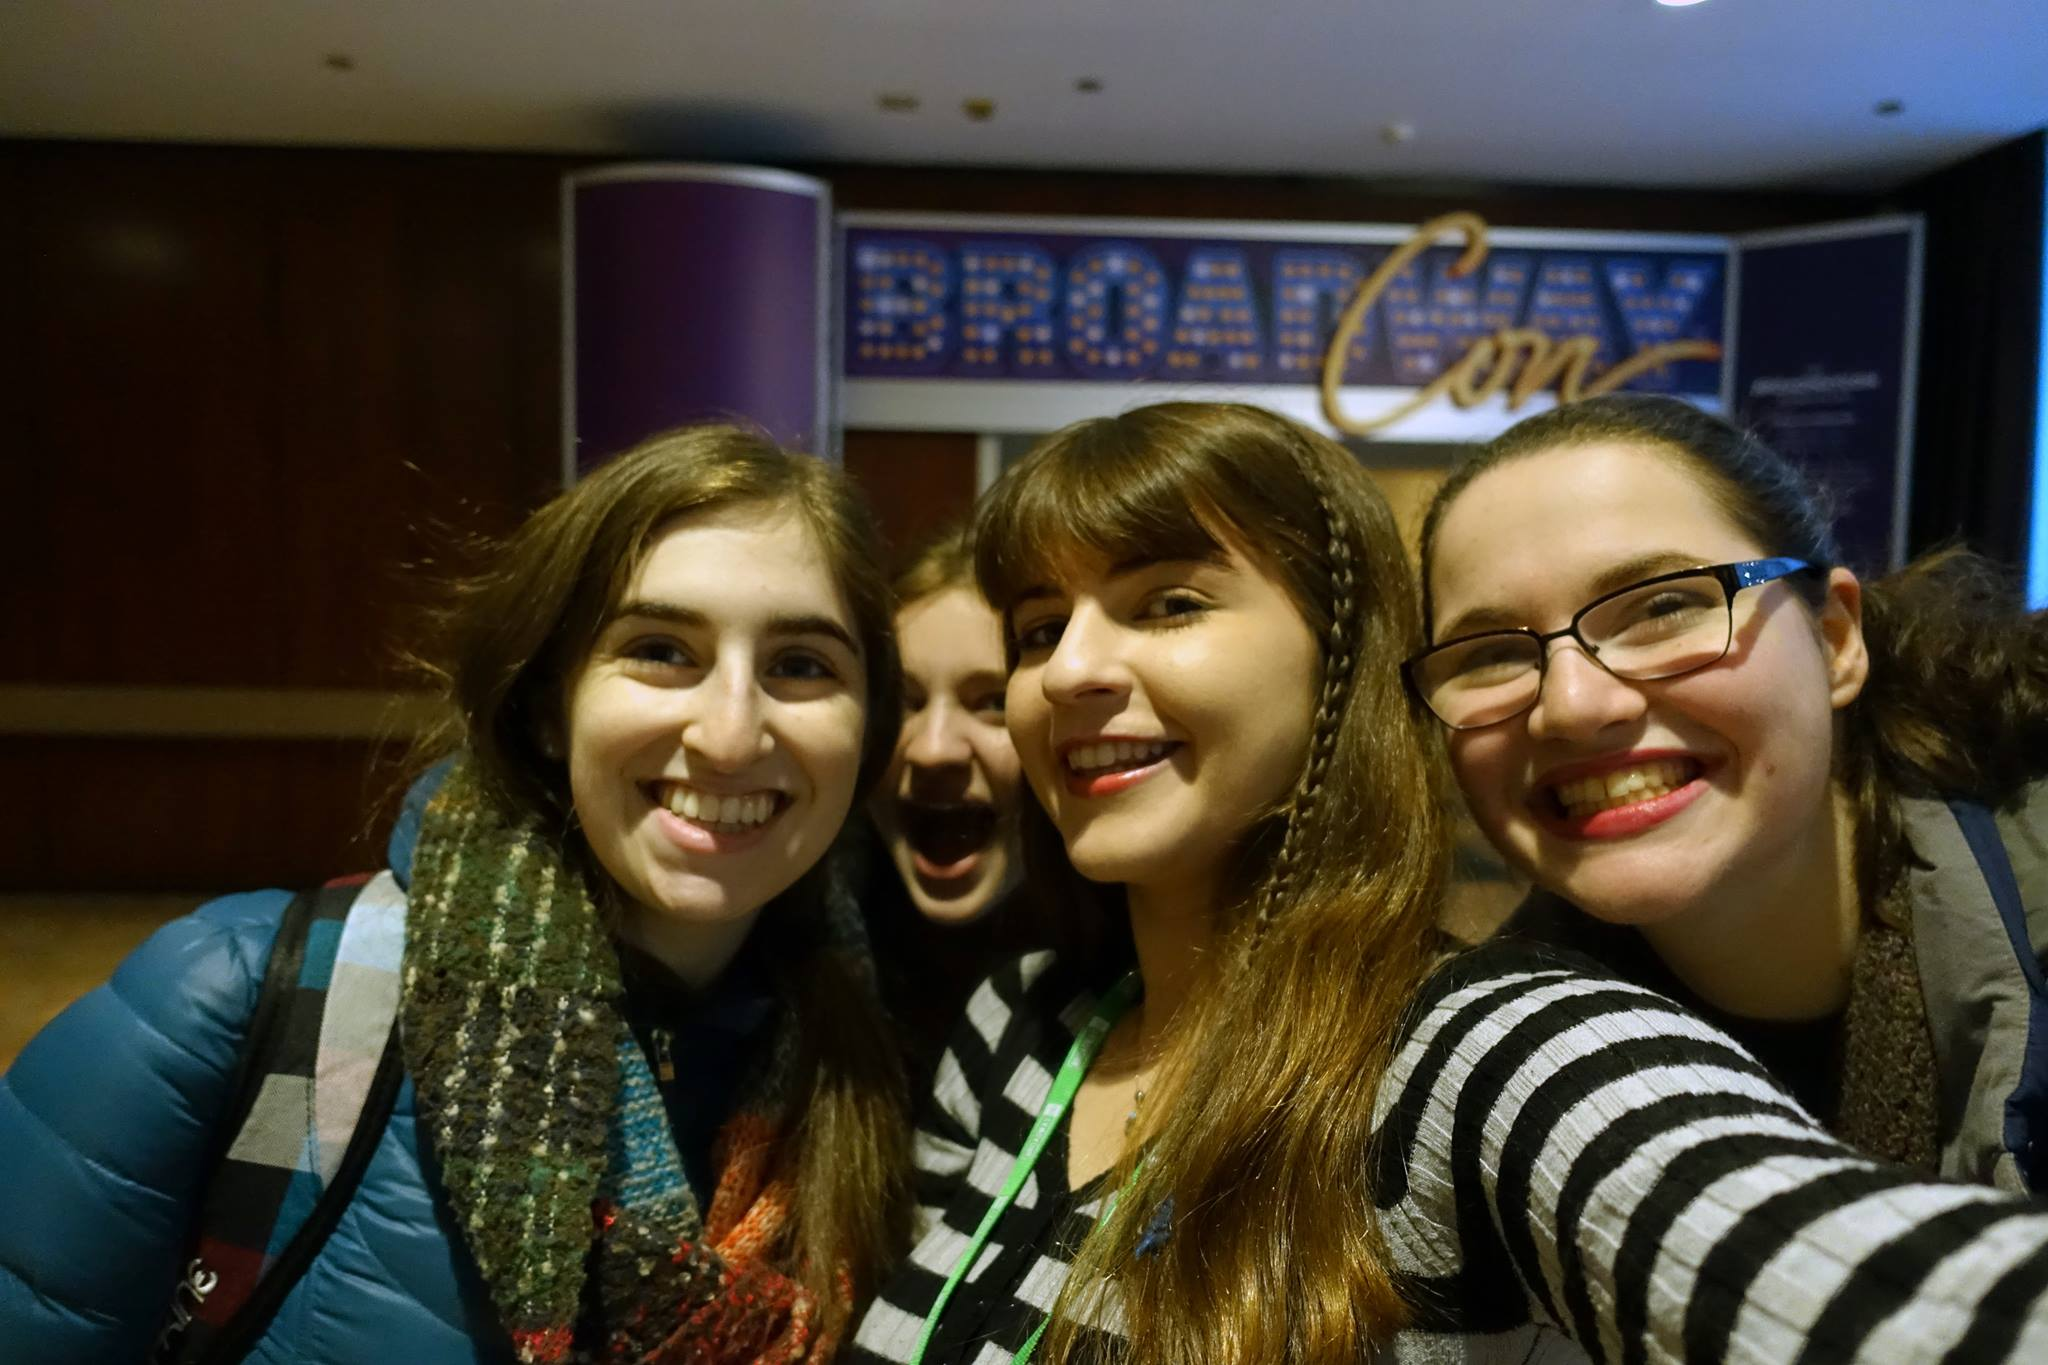 From left to right: Rachel, Evan, Me, and Anabel in front of the Broadway Con marketplace